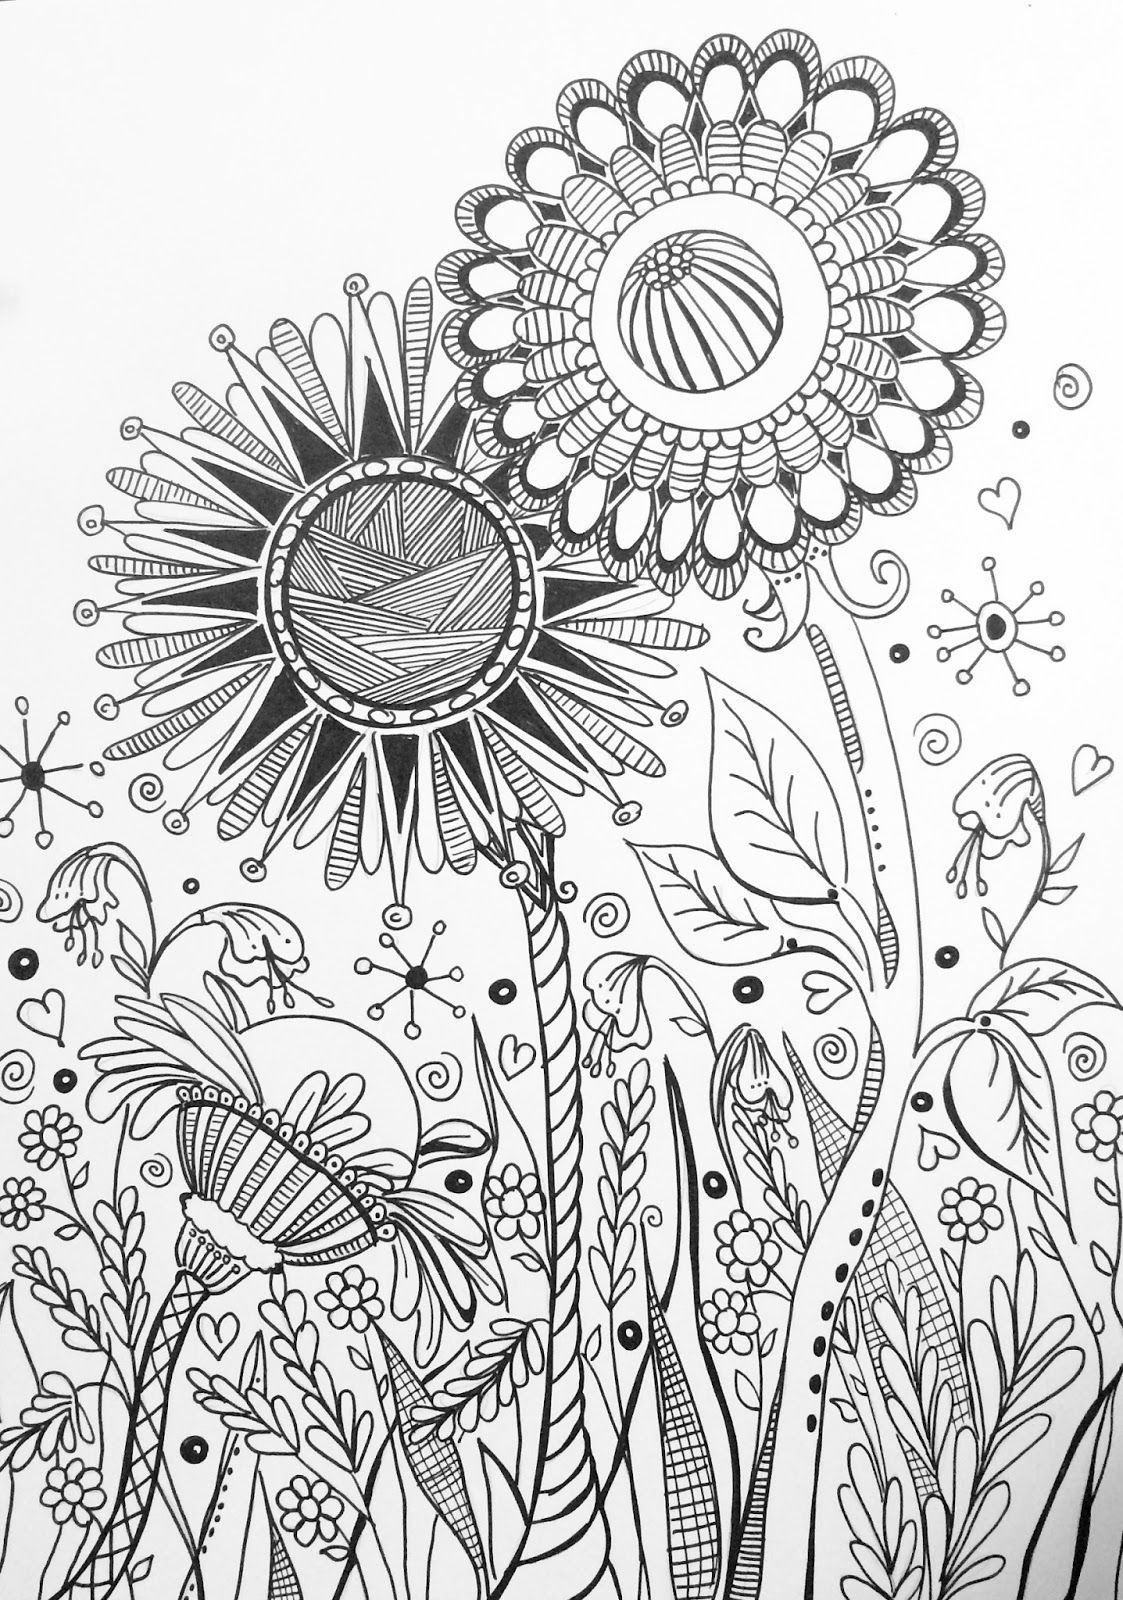 XXL coloring book pages preview for Kingsport Fun Fest Makers Faire ...